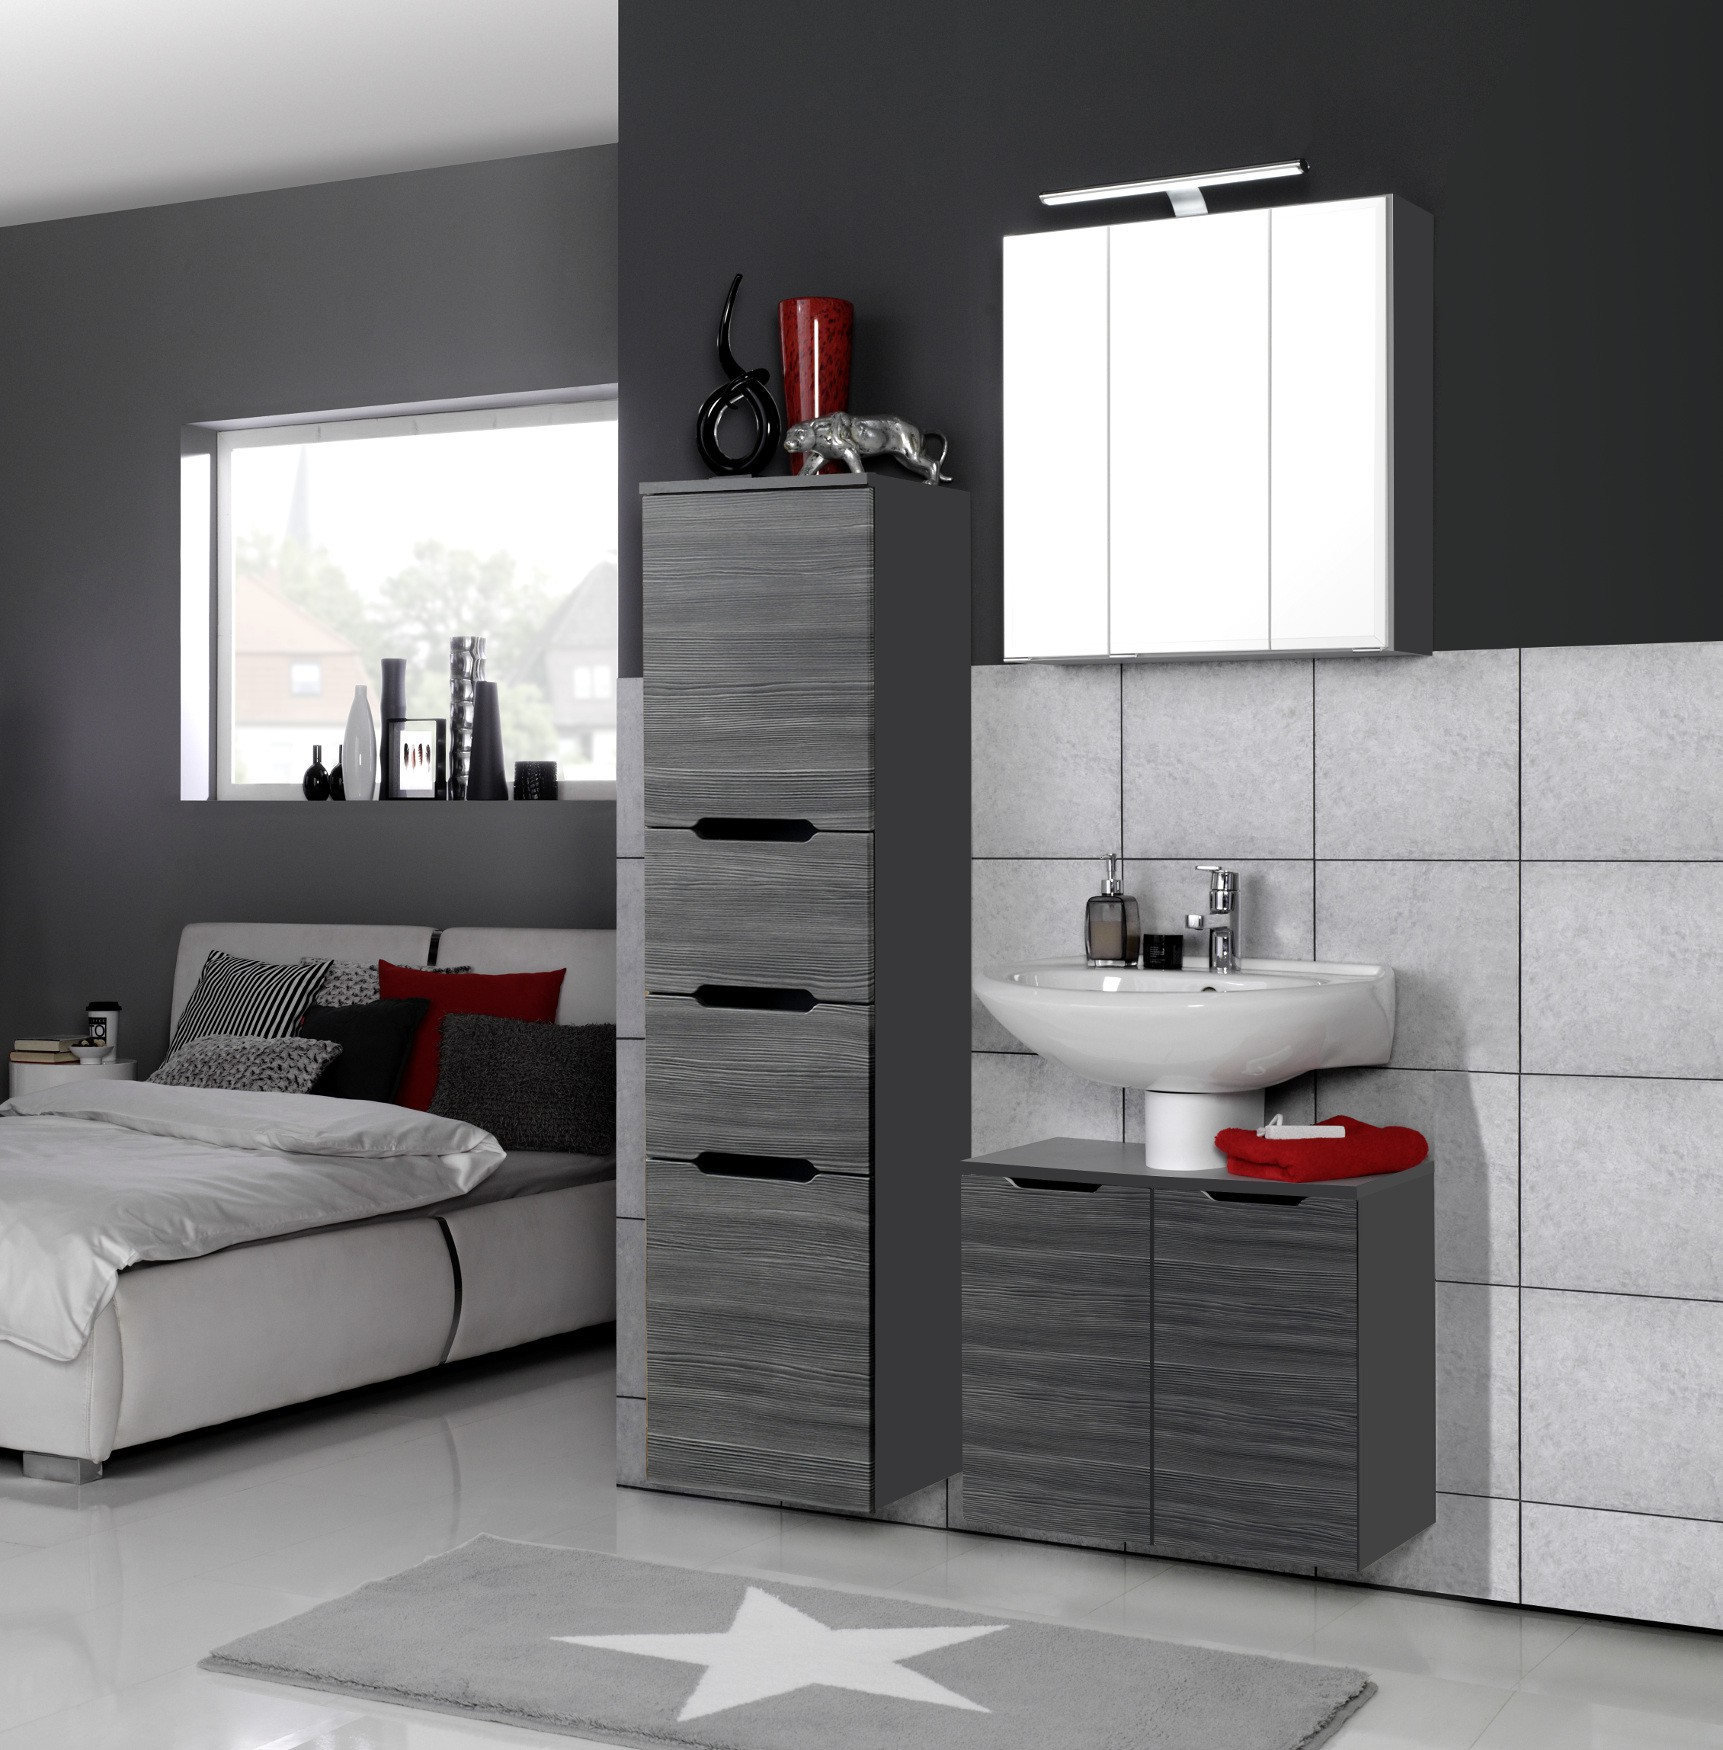 badm bel set belluno 4 teilig 100 cm breit l rche anthrazit mit echtholzstruktur bad. Black Bedroom Furniture Sets. Home Design Ideas